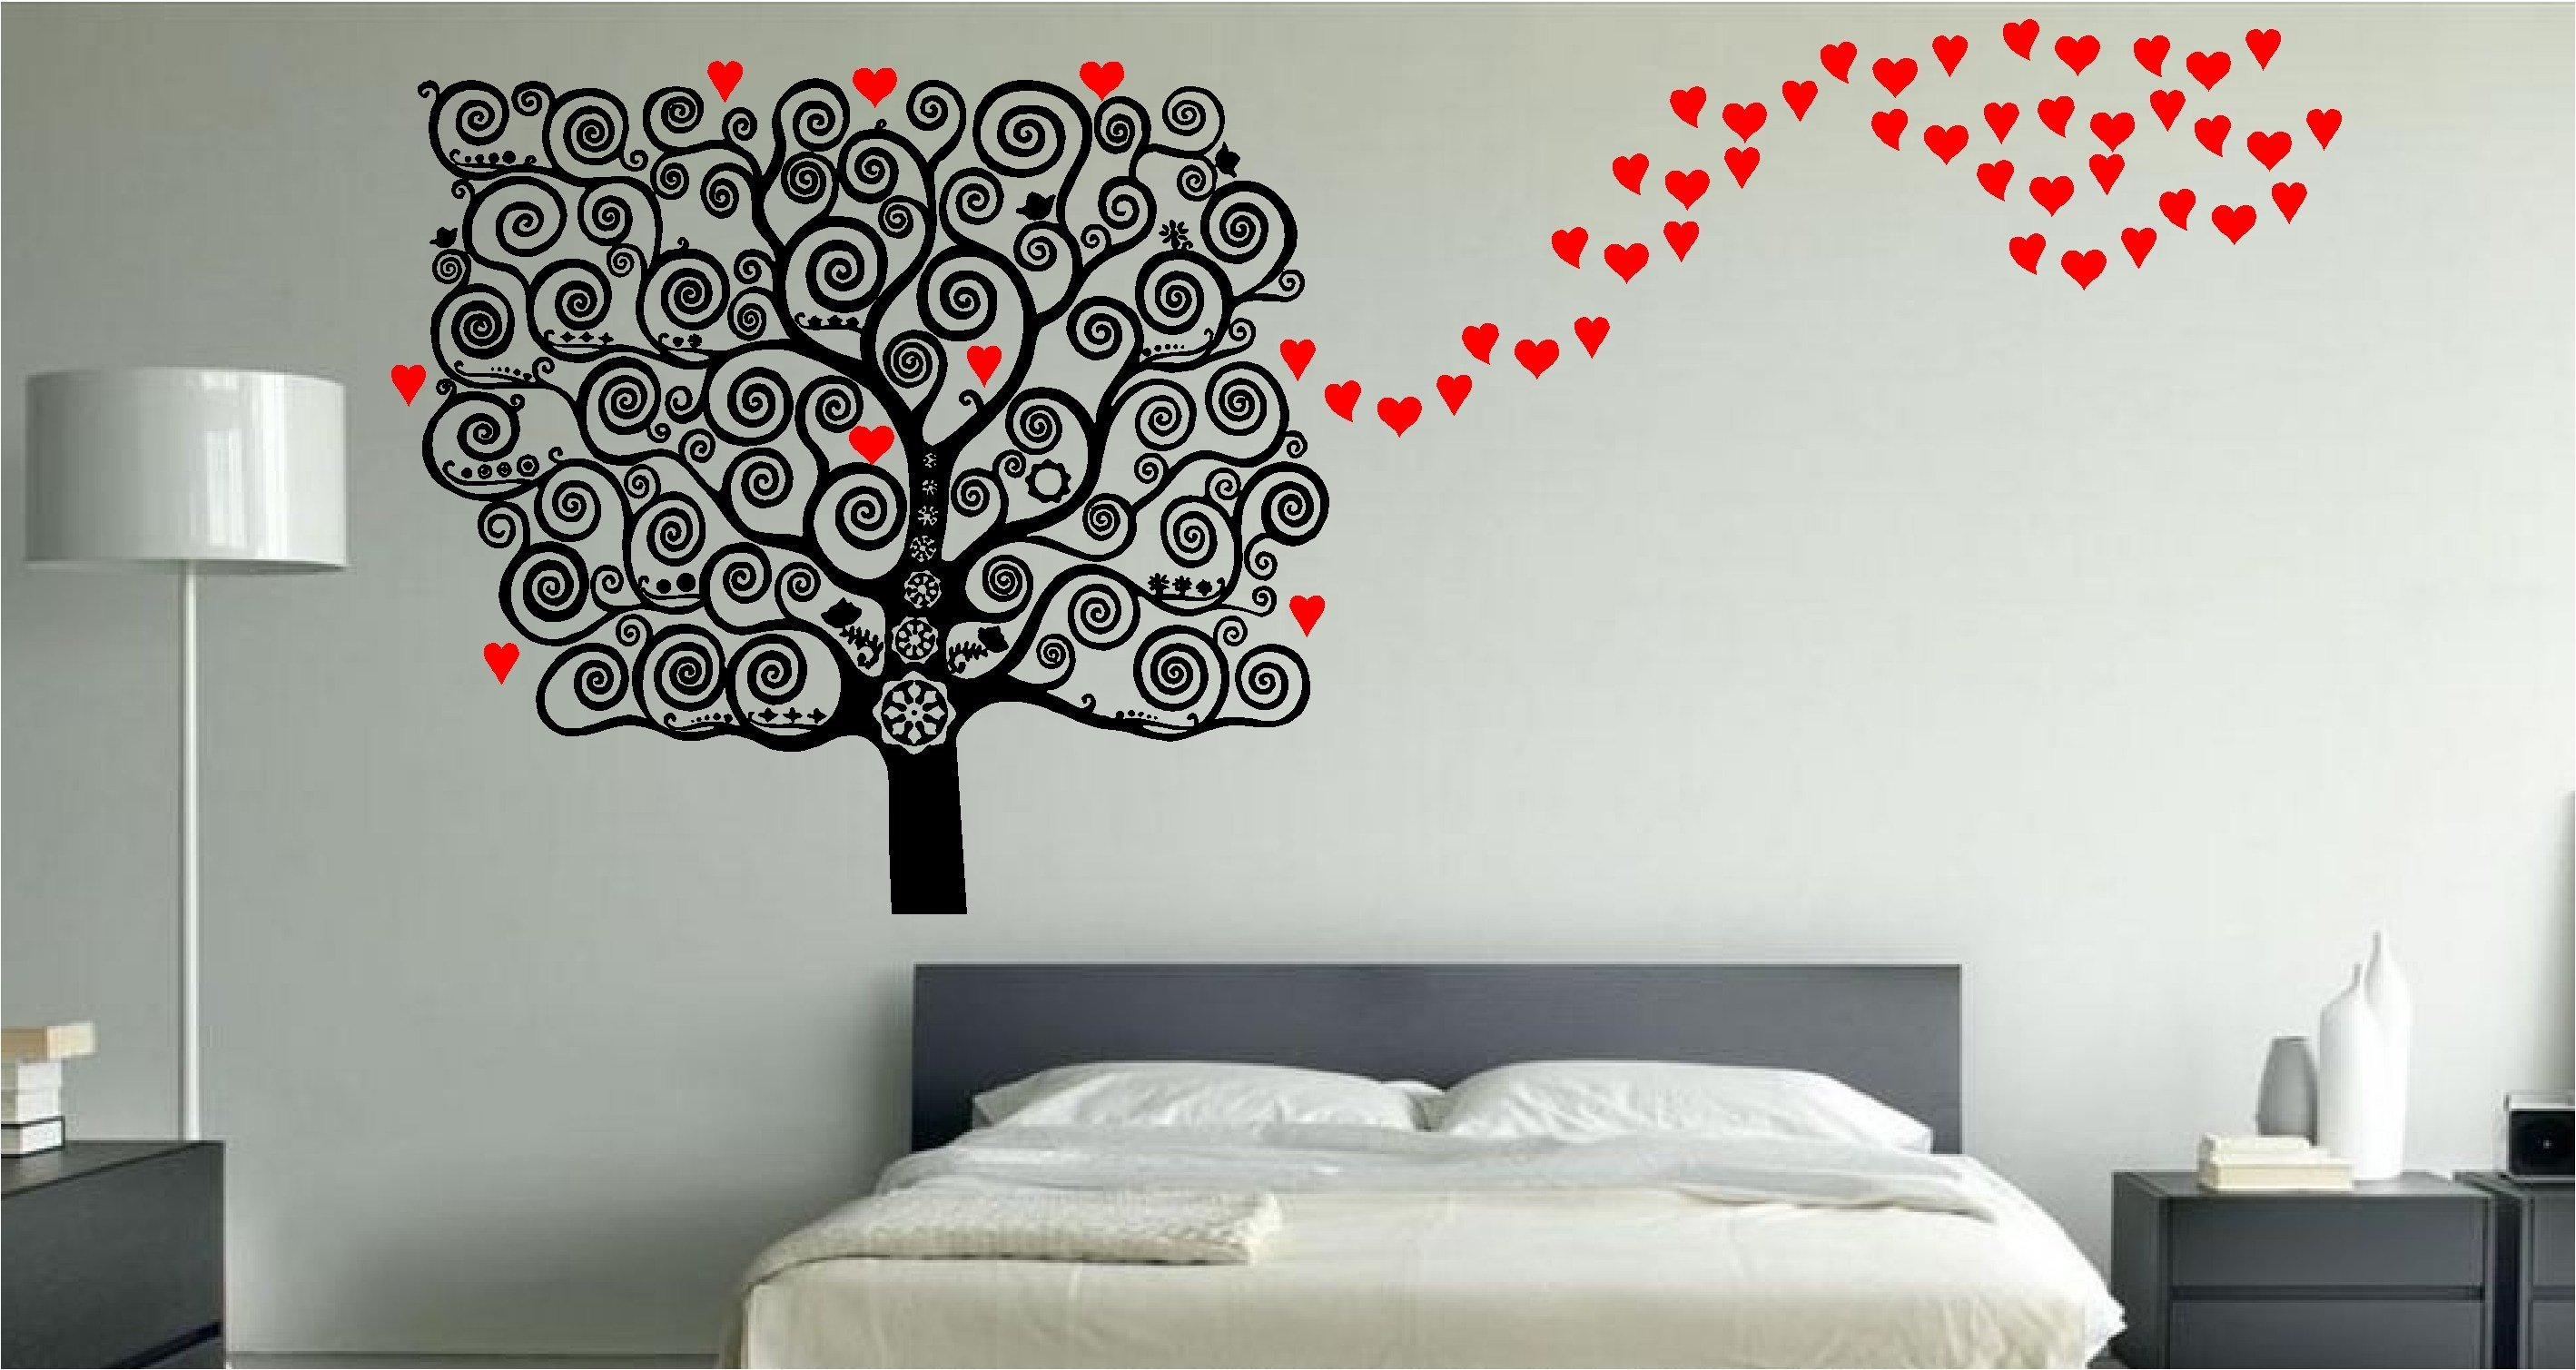 Best Stunning Love Heart Tree Wall Art Sticker Decal Bedroom Kitchen Lounge Ebay With Pictures